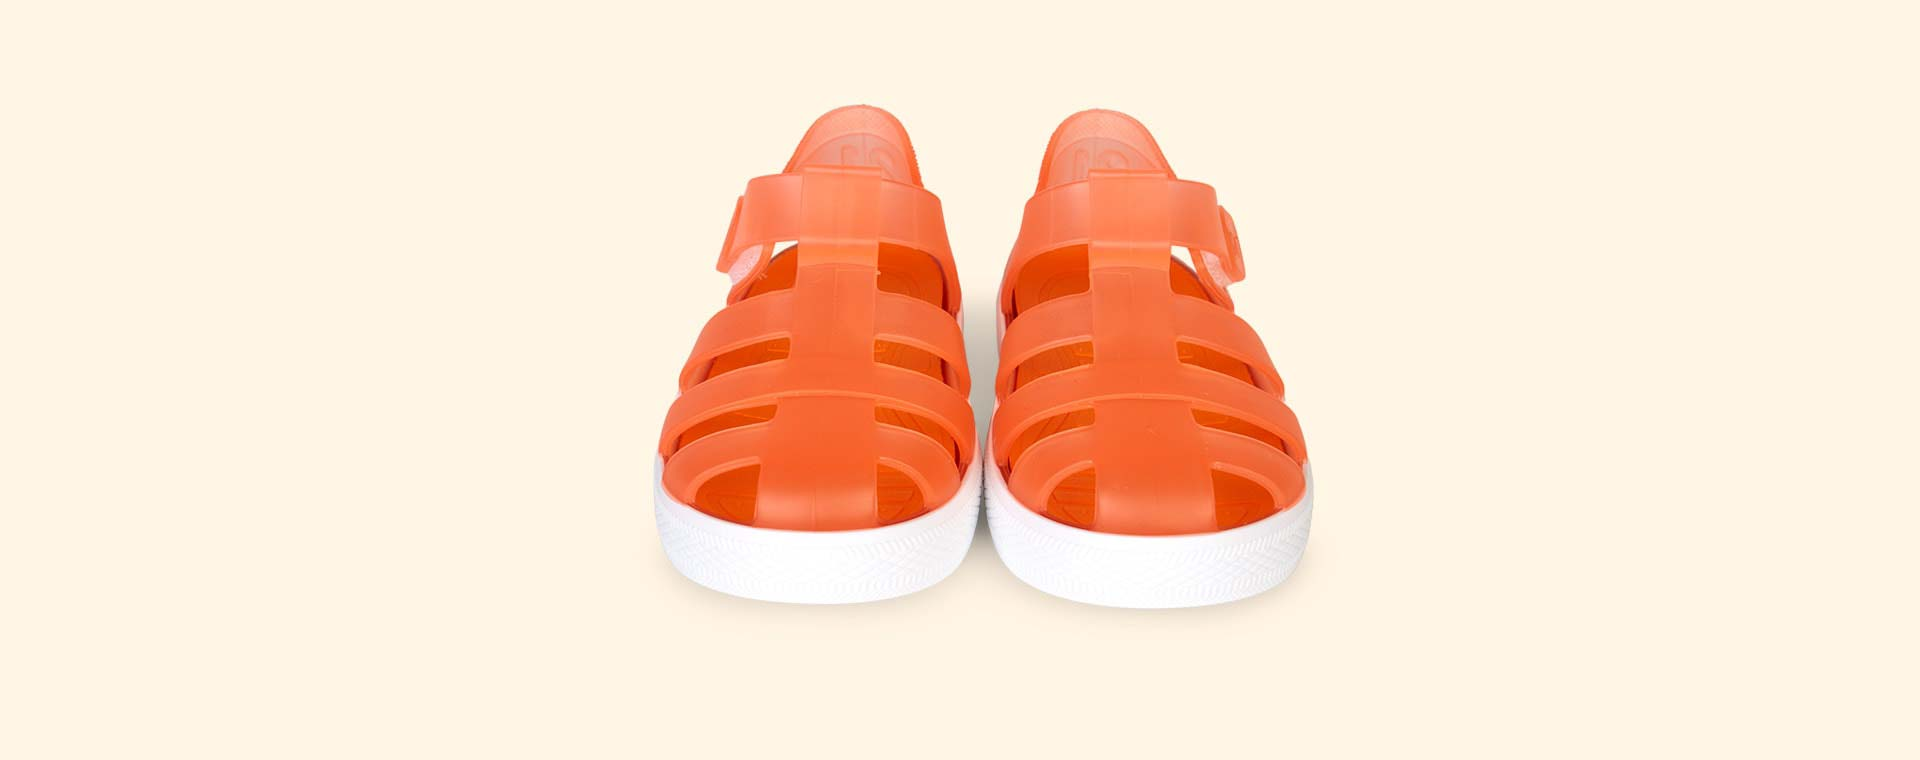 Orange igor Star Velcro Jelly shoes